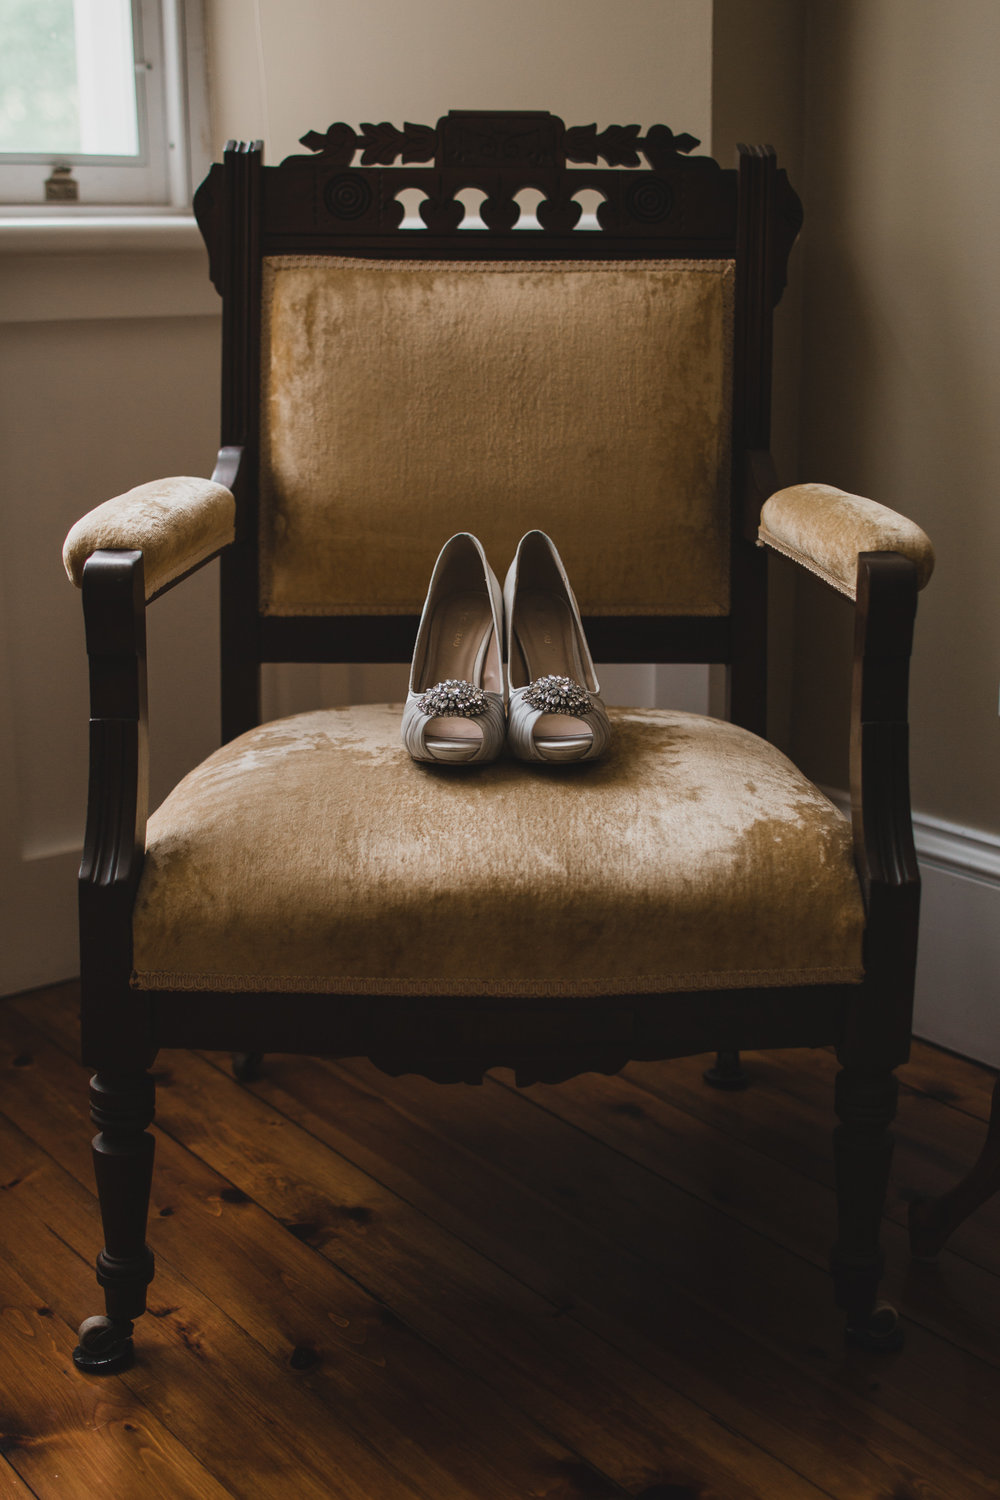 Vintage chair, bride's details